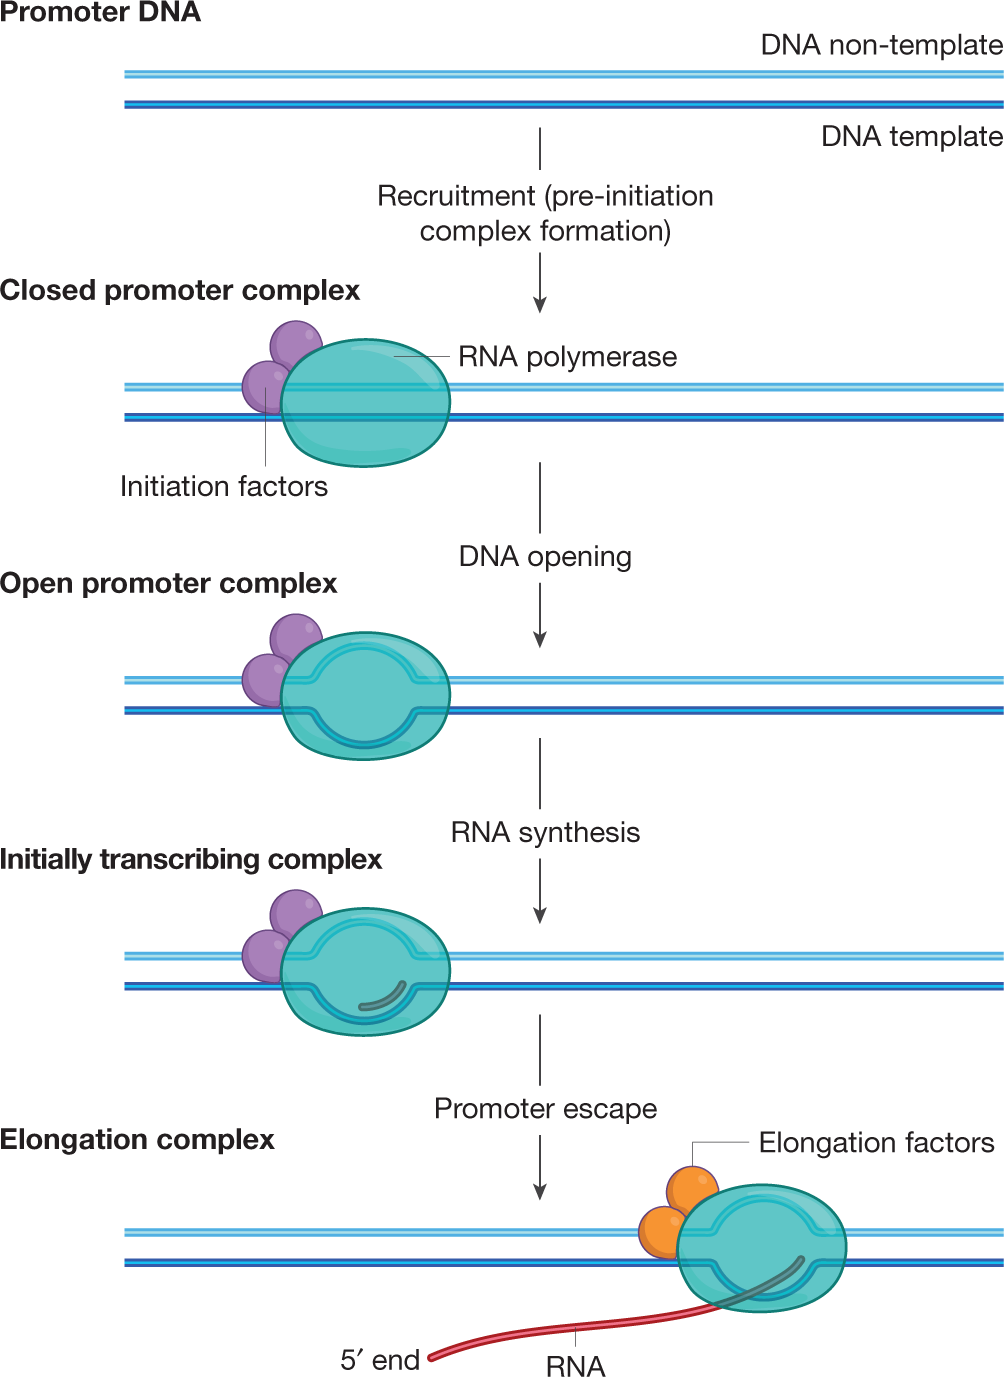 Organization and regulation of gene transcription | Nature